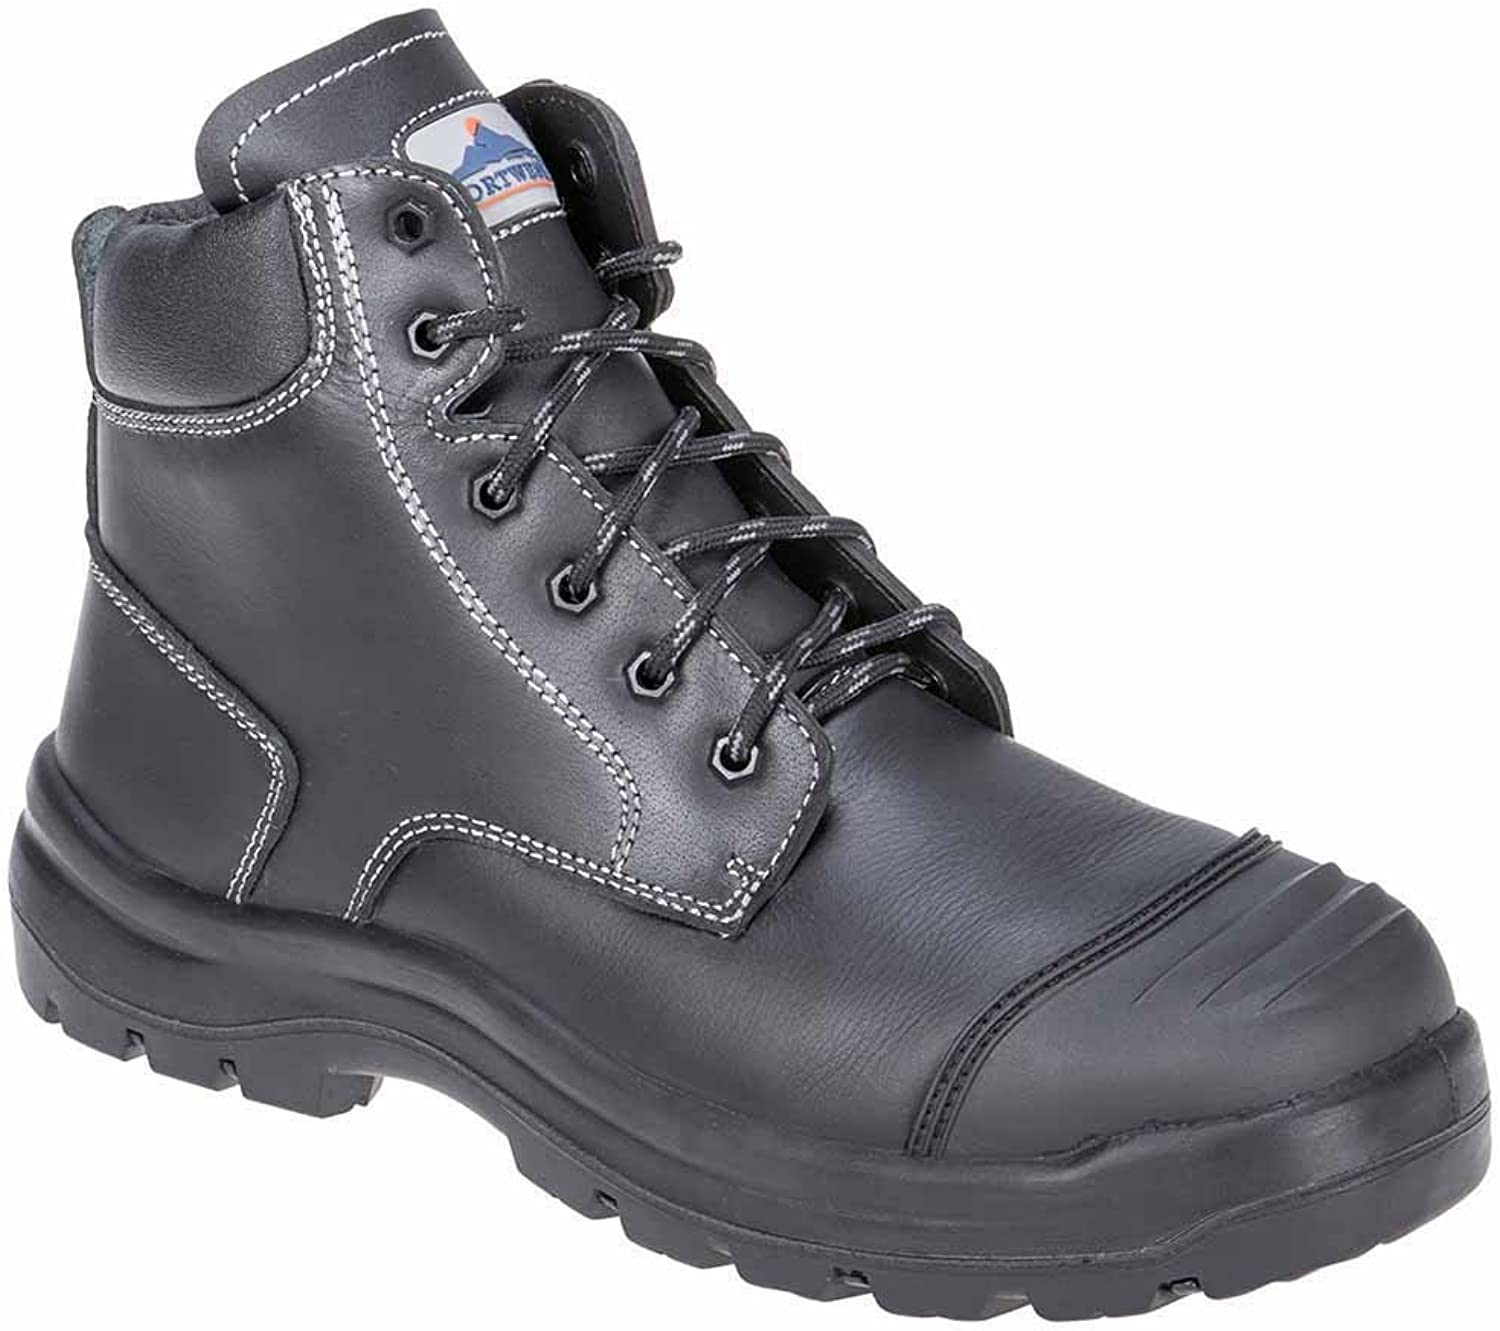 Portwest Clyde Safety Boot Steel Toe Cap Predective Work Wear shoes Anti Static, 13